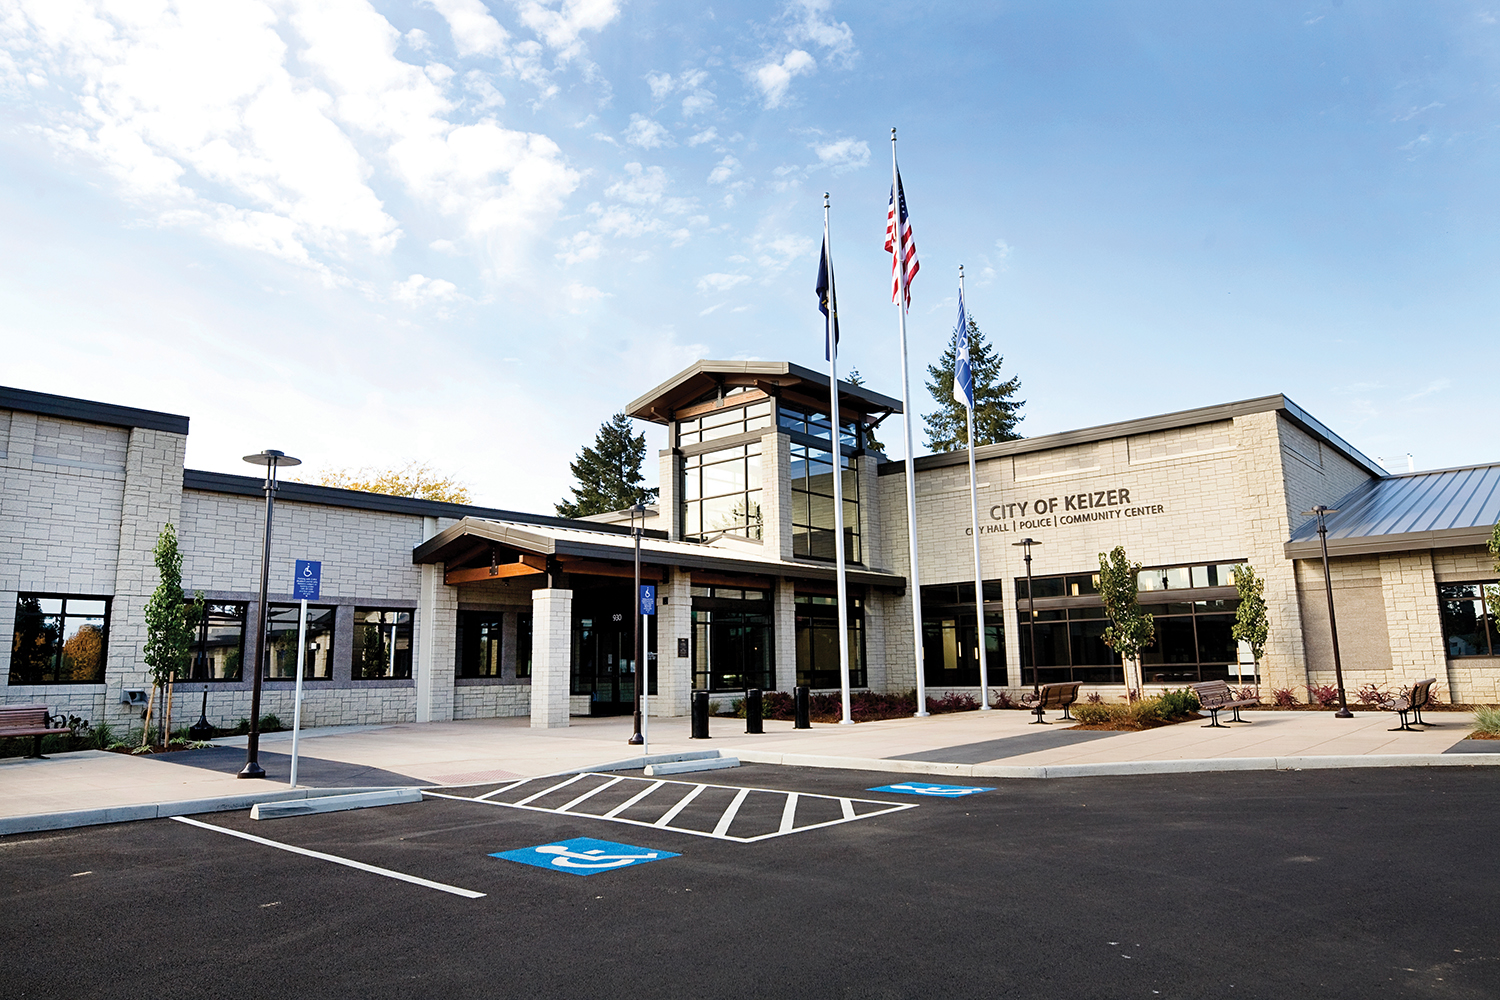 City of Keizer City Hall and Police